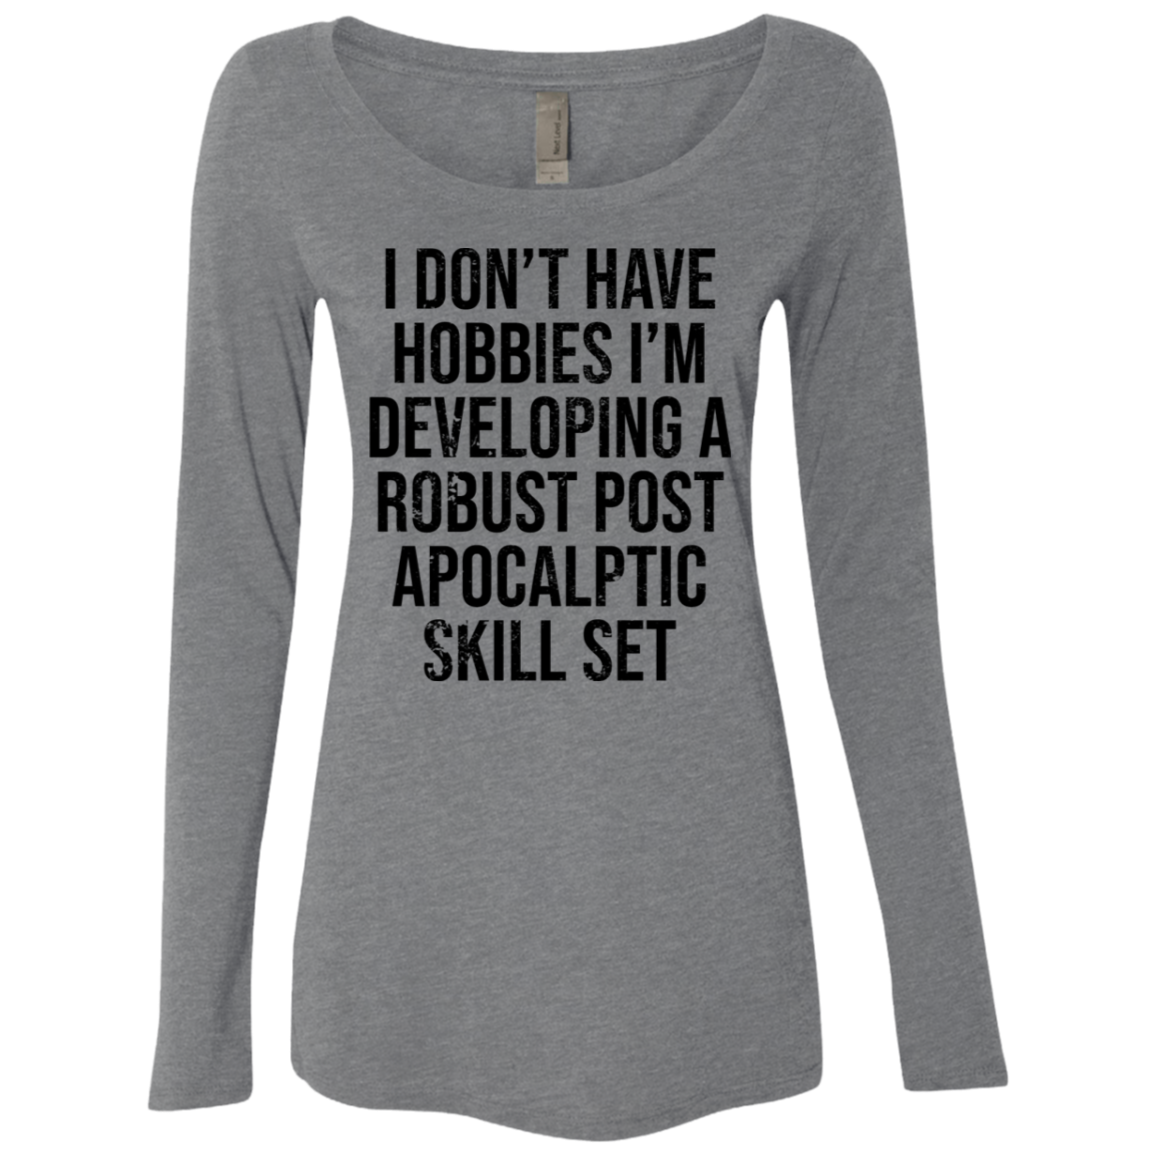 I Dont Have Hobbies I develop A Robust Post Apocaliptic Skill Set Women's Long Sleeve Tee